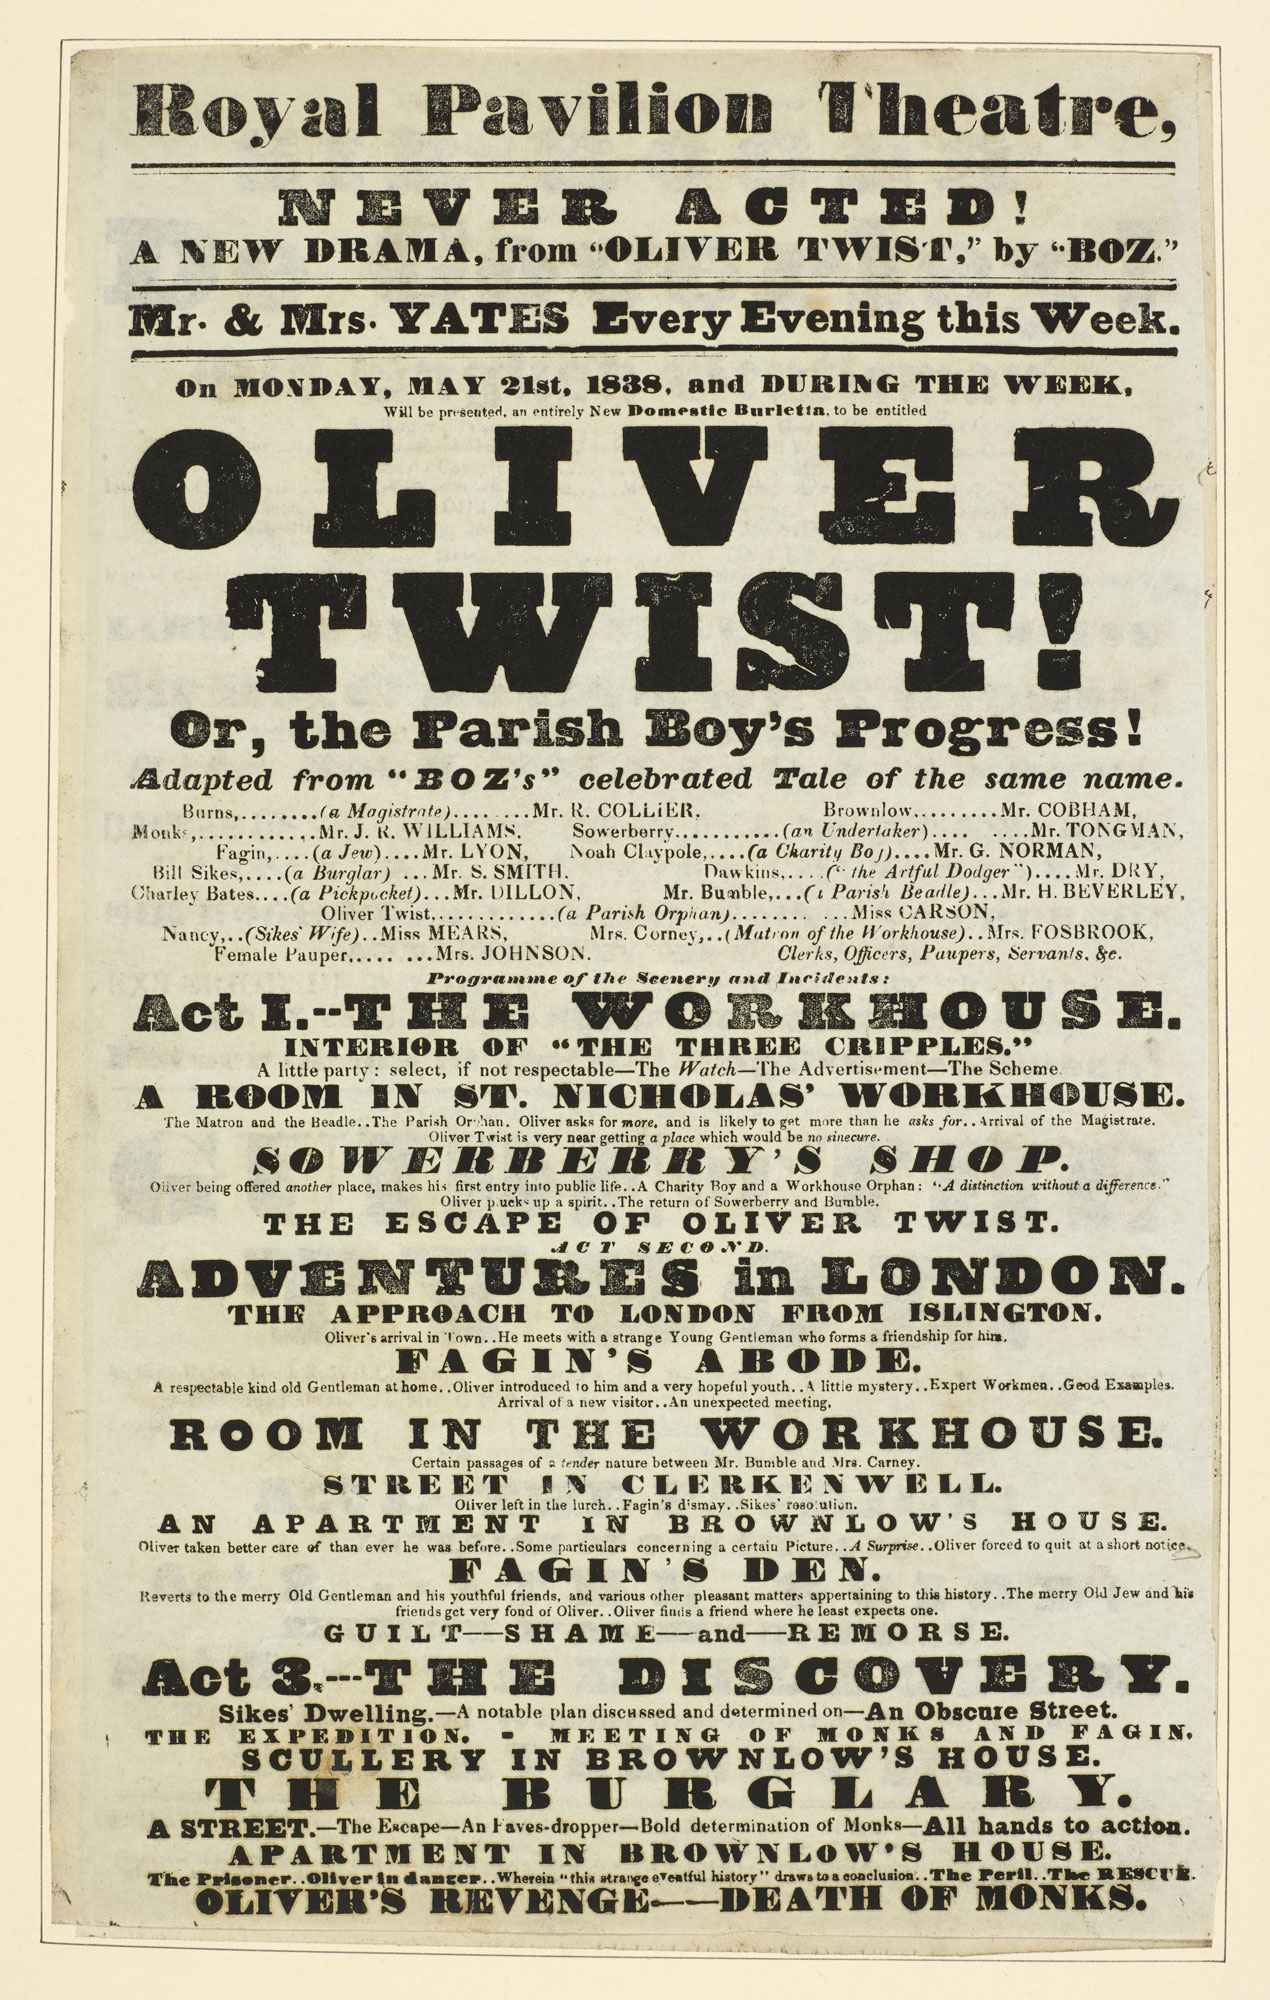 Playbill for The Royal Pavilion Theatre advertising 'Oliver Twist', [page: 100]